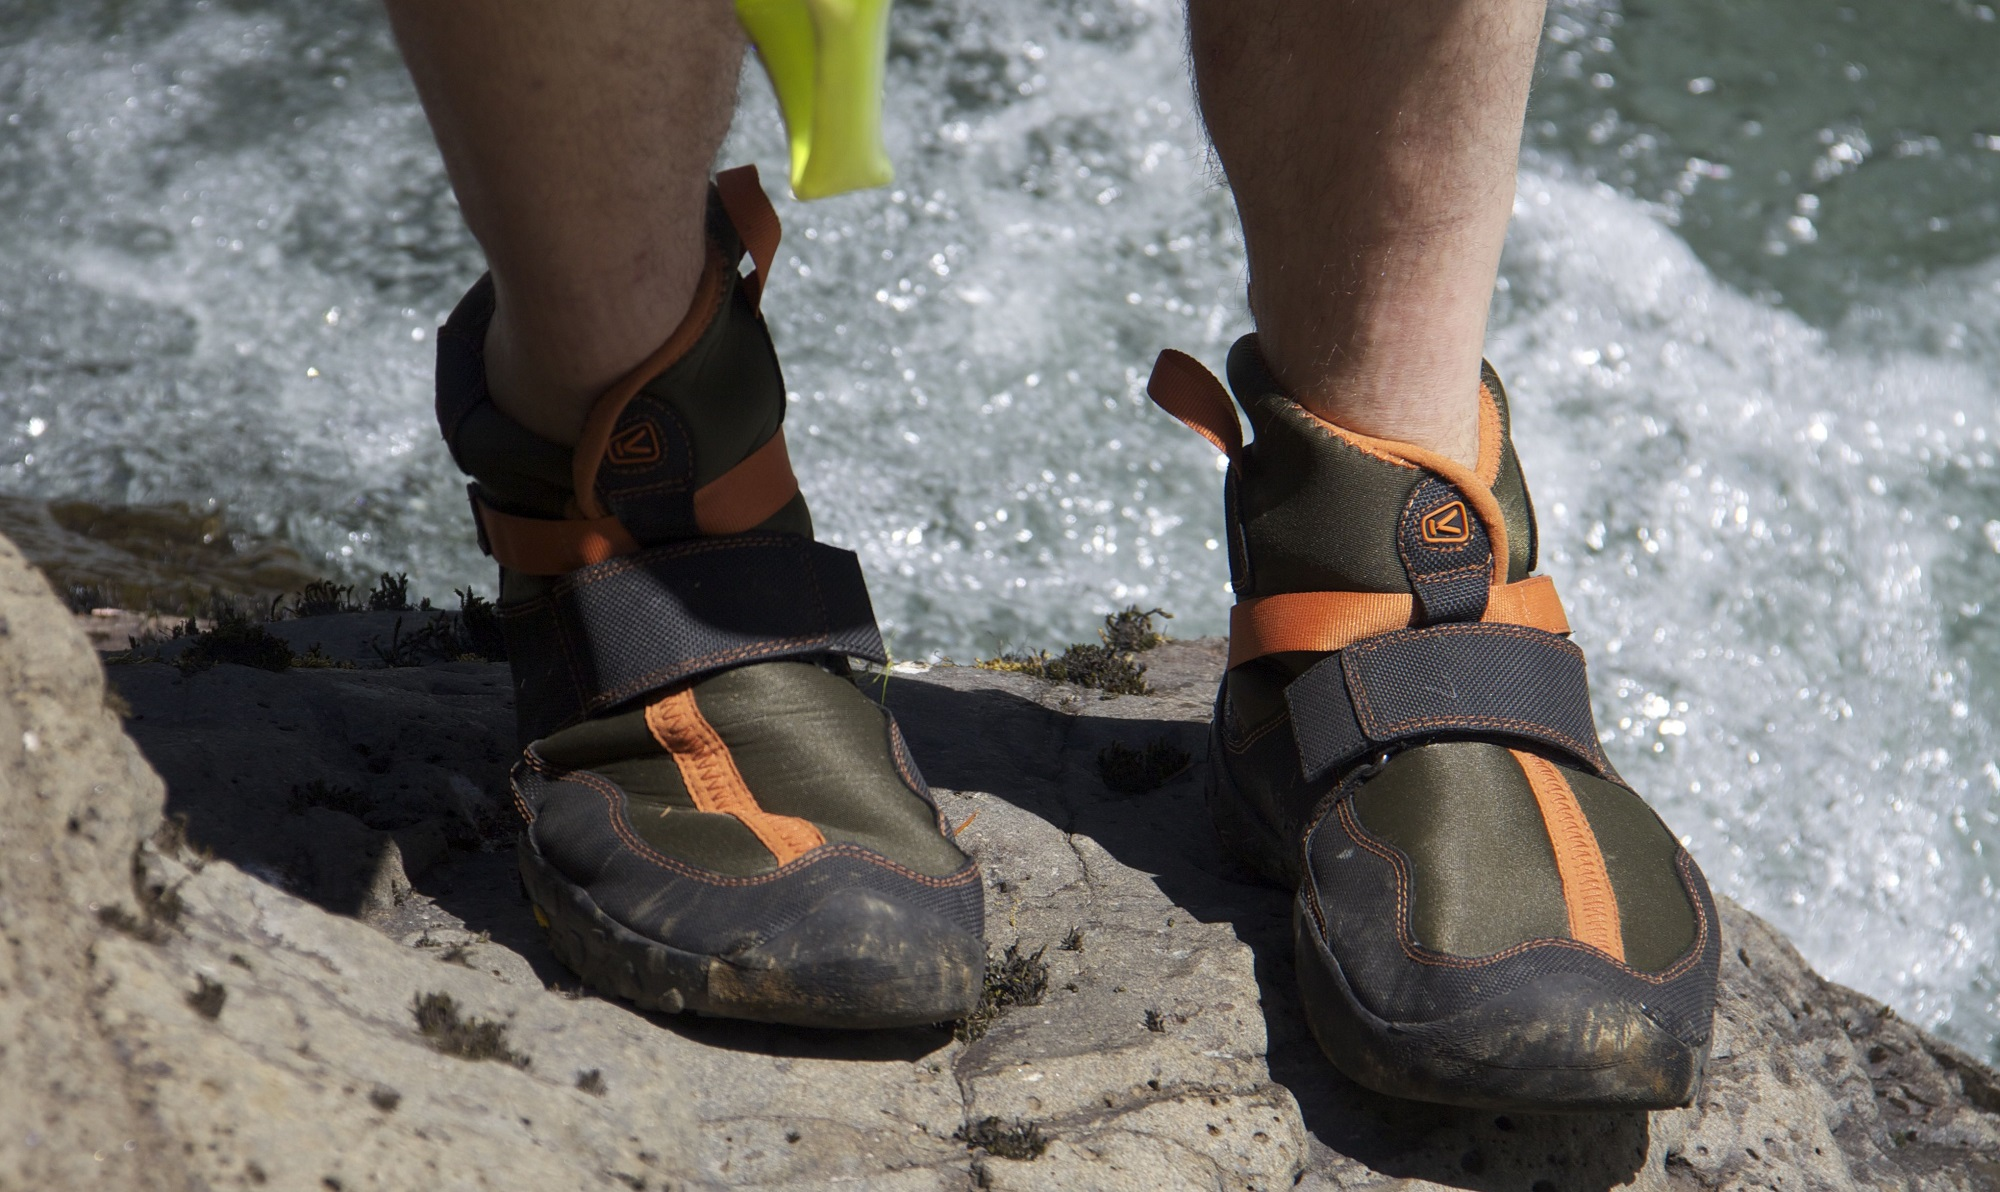 Best-Water-Shoes-stepping-on-rock-coming-out-of-river